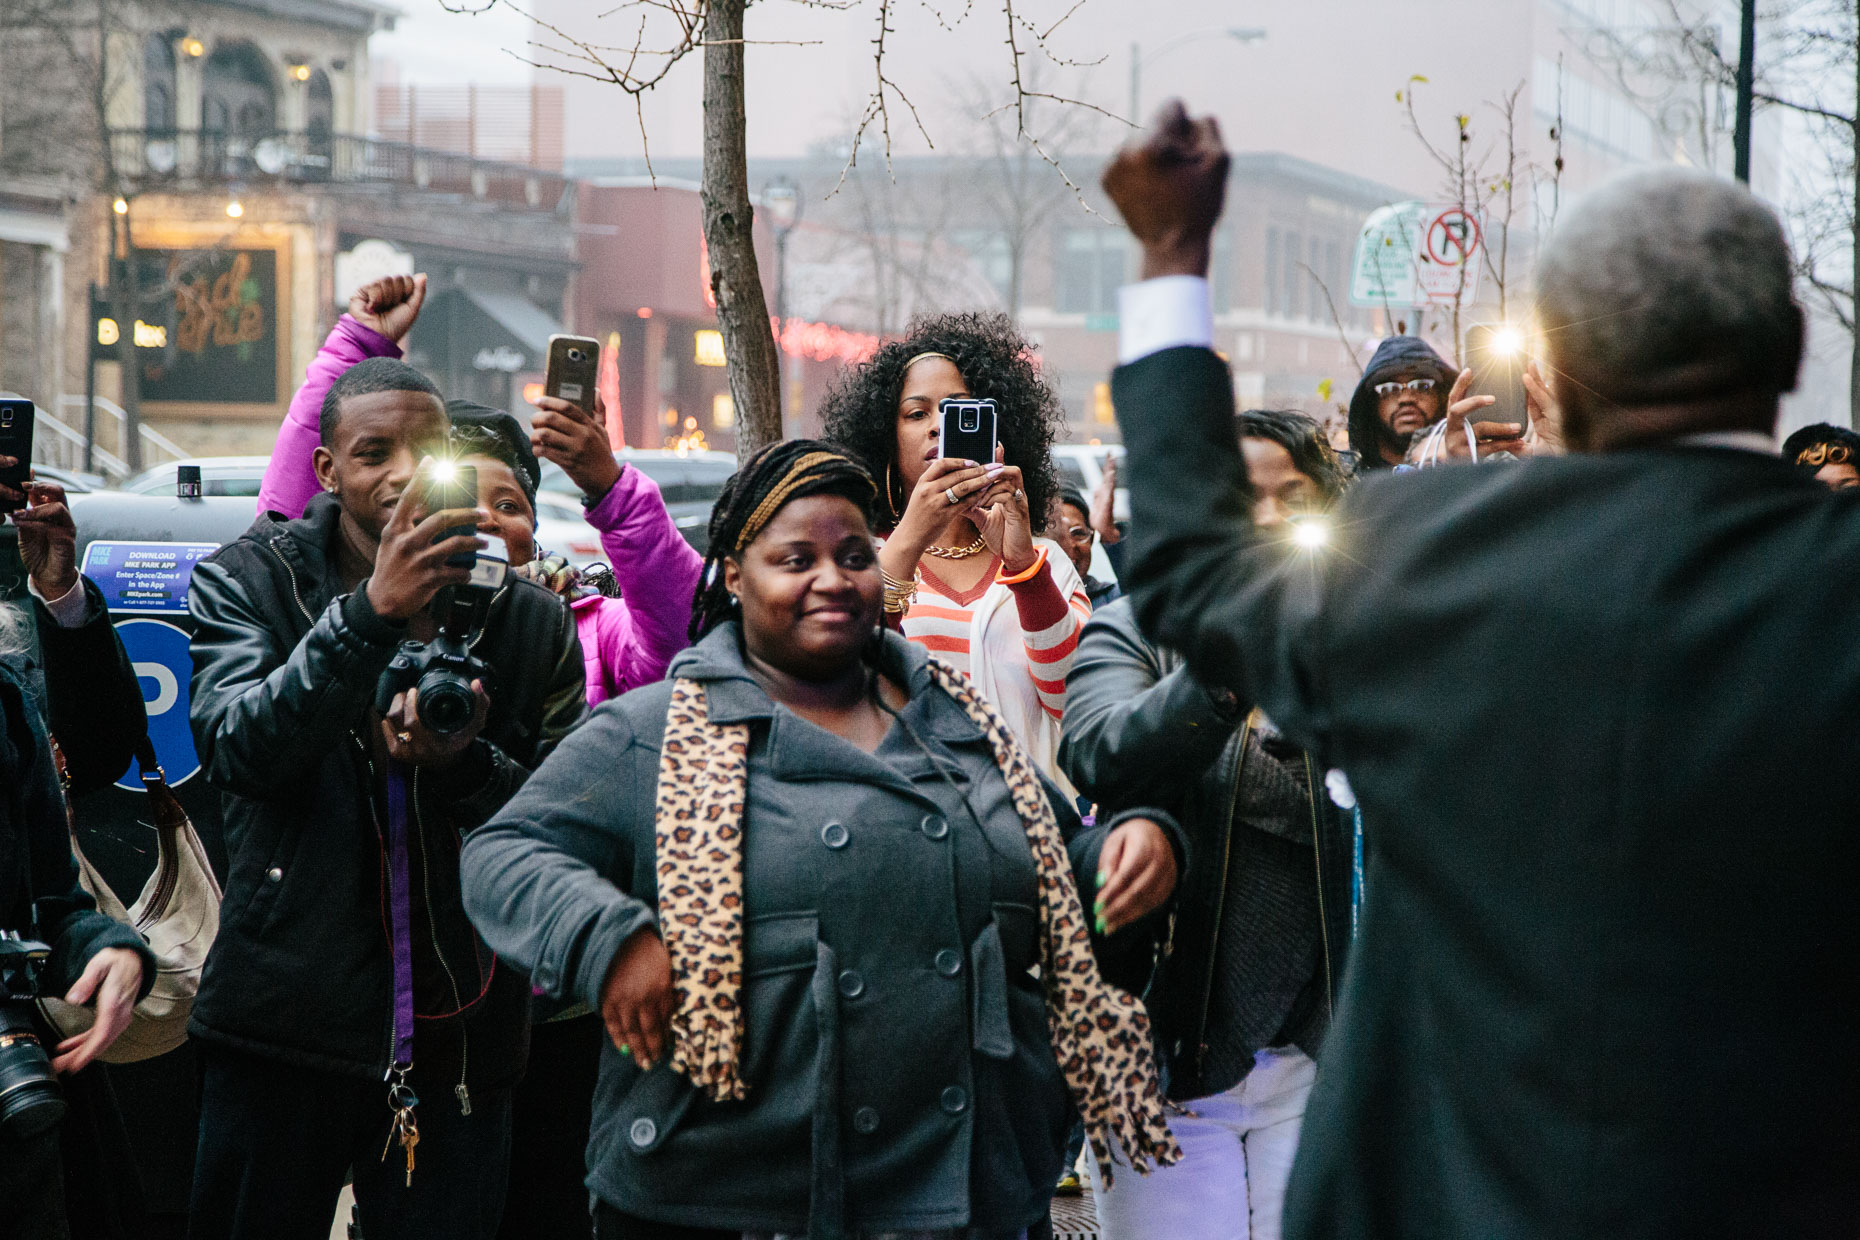 Andre Lee Ellis, the organizer of the 500 Black Tuxedos Event, speaks to supporters outside of the Chic Cafe on Jefferson Street, Saturday December 12th, 2015 in Milwaukee, Wisconsin.